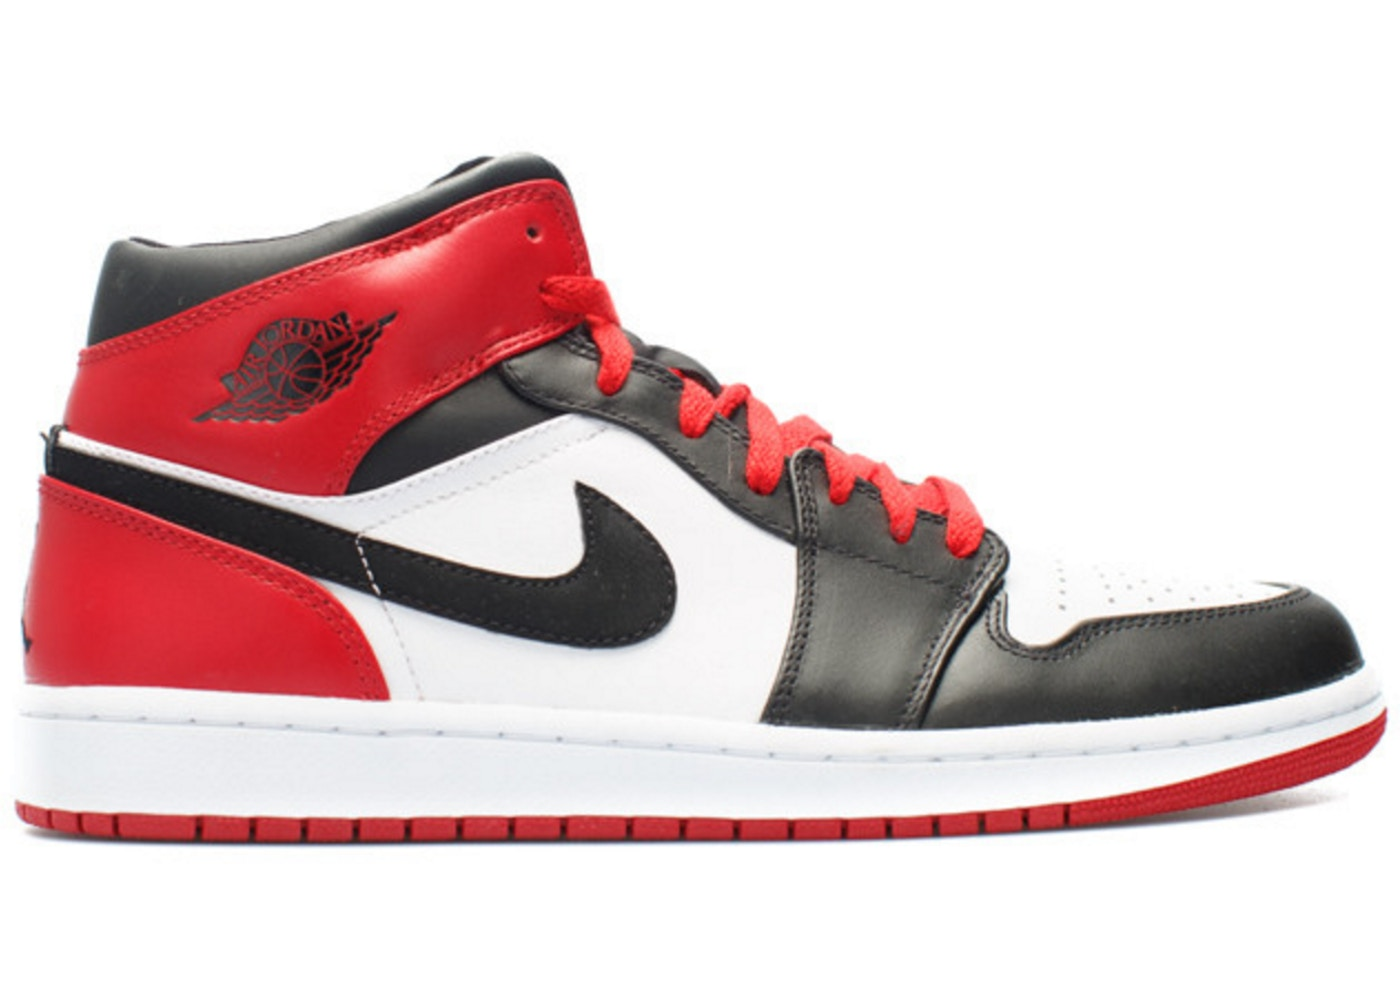 8636d9d17e21fd Jordan 1 Retro Beginning Moments Pack (BMP) Old Love - 136085-102